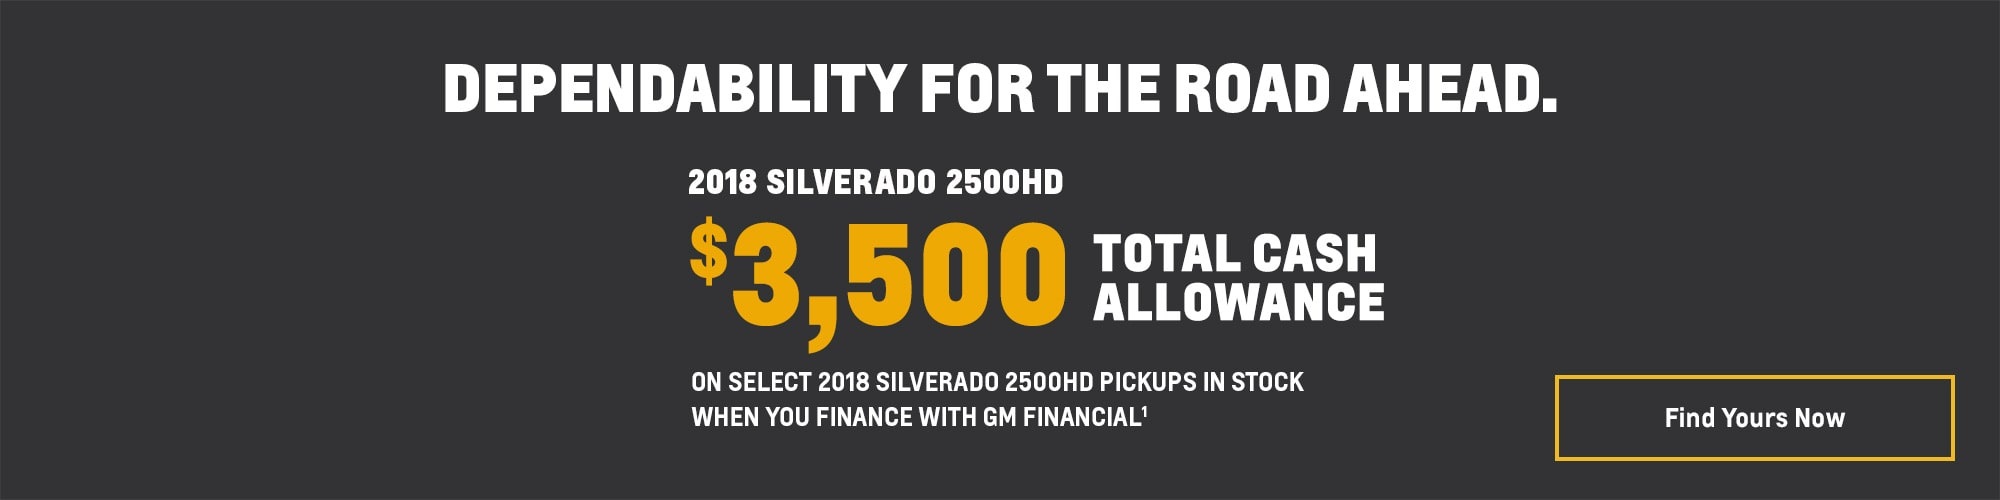 2018 Silverado 2500HD Pickup Truck Deals and Offers